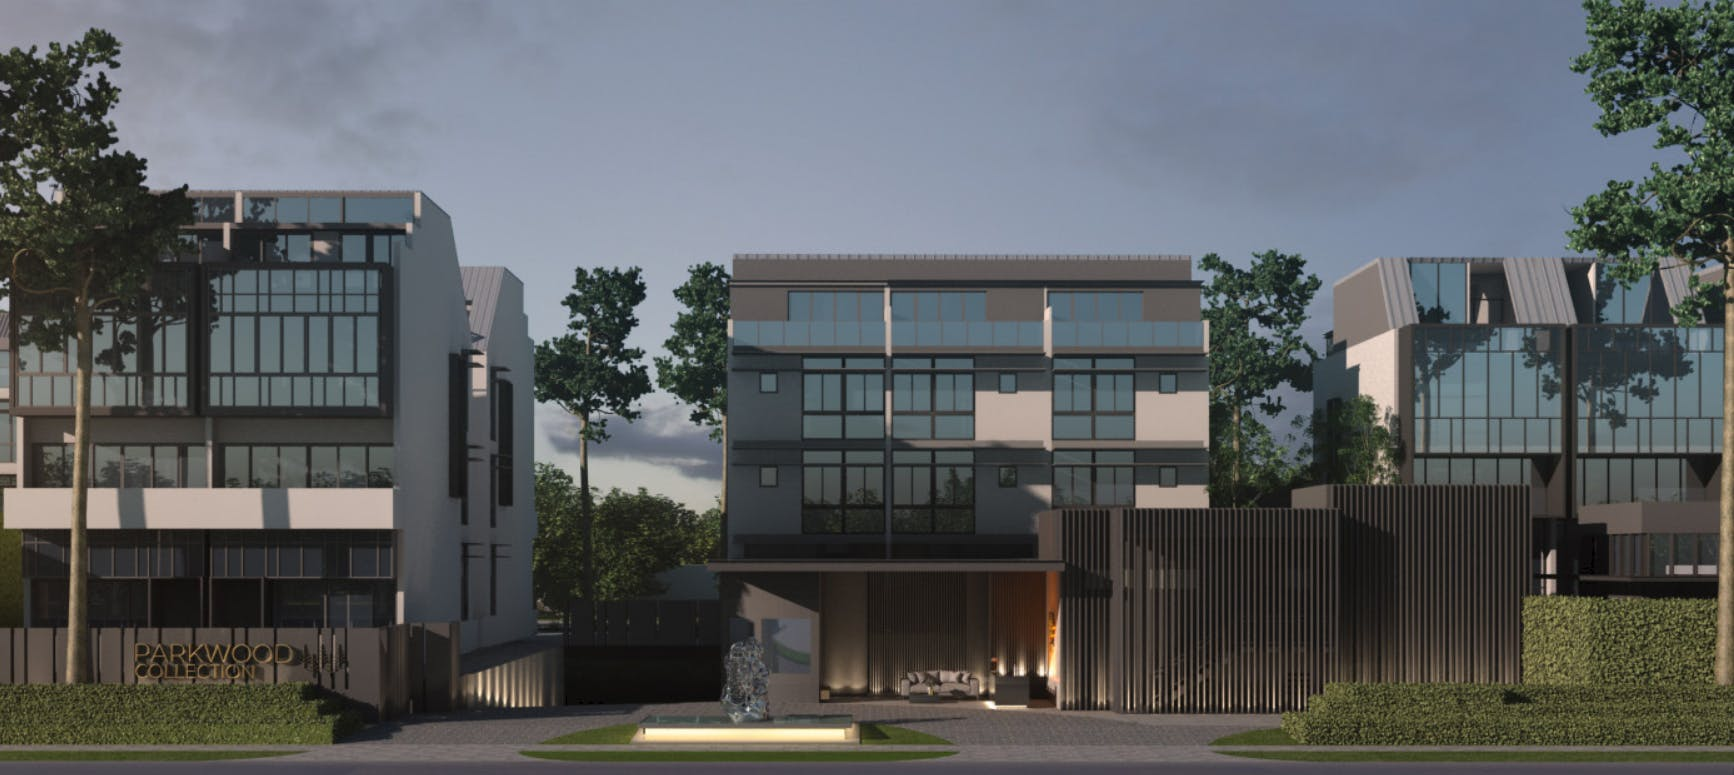 Artists's impression of Parkwood Collection in the evening.